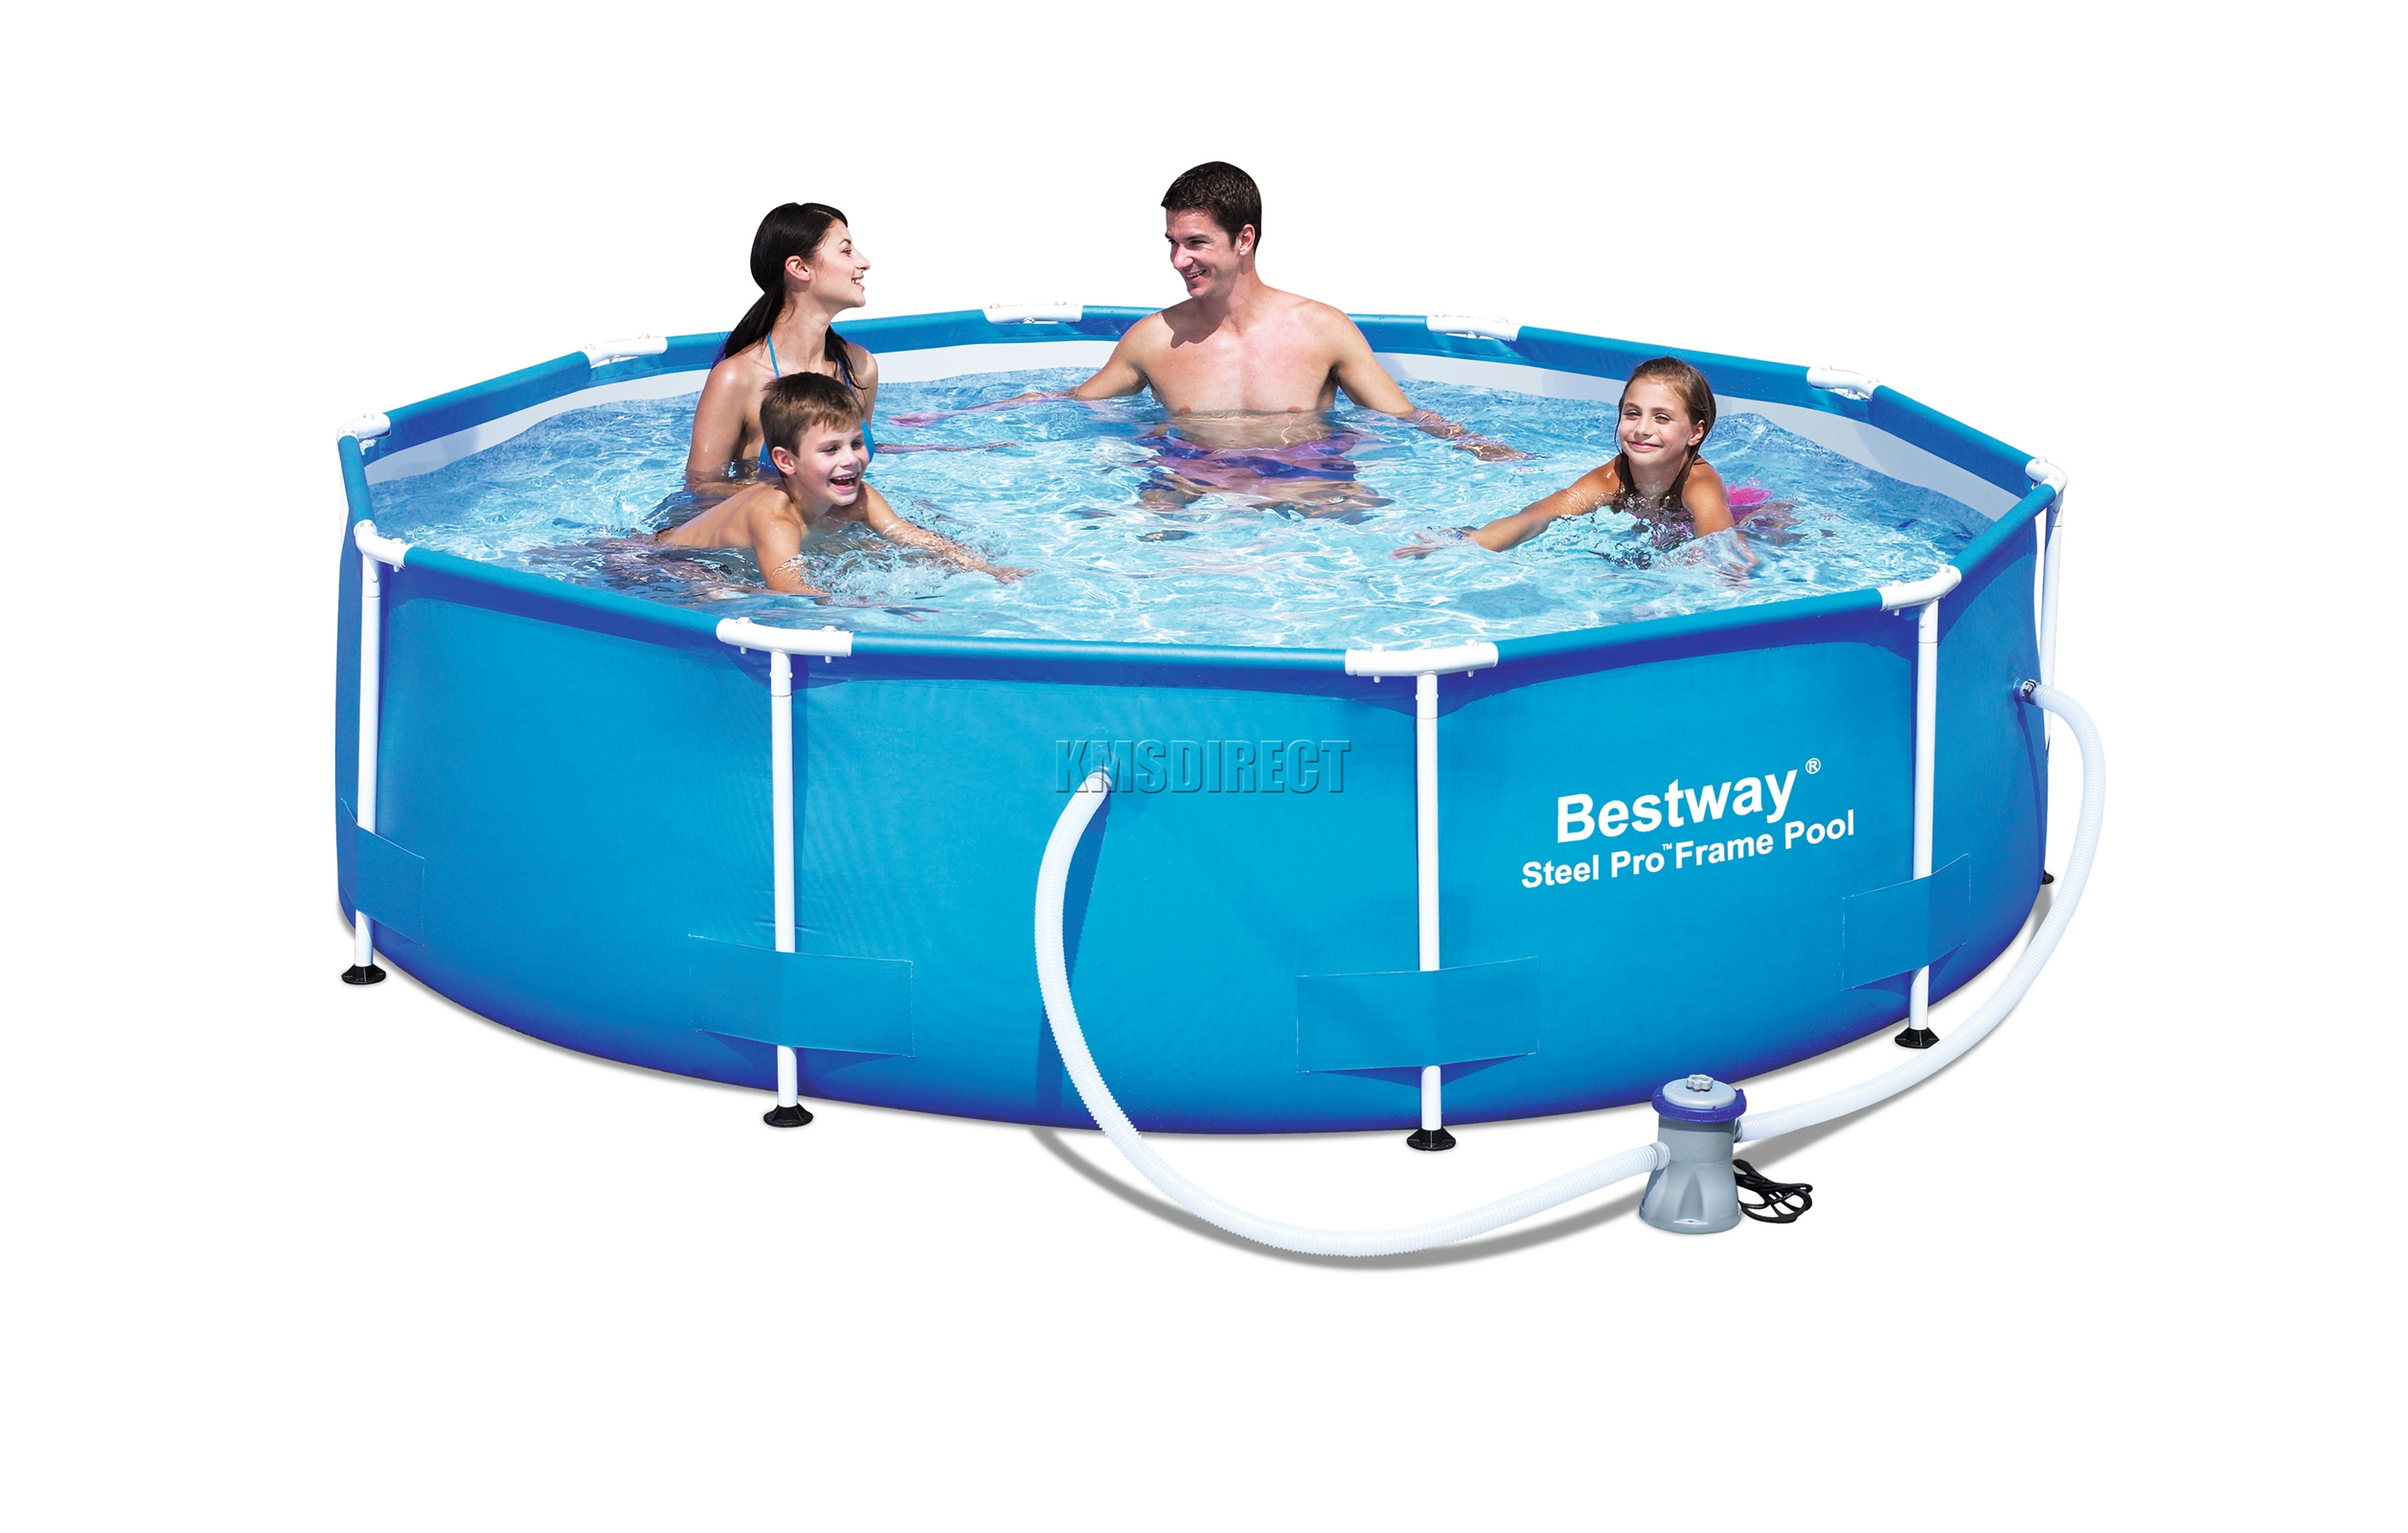 Bestway Steel Pro Frame Swimming Pool Set Round Above Ground 10ft X 30inch New Ebay